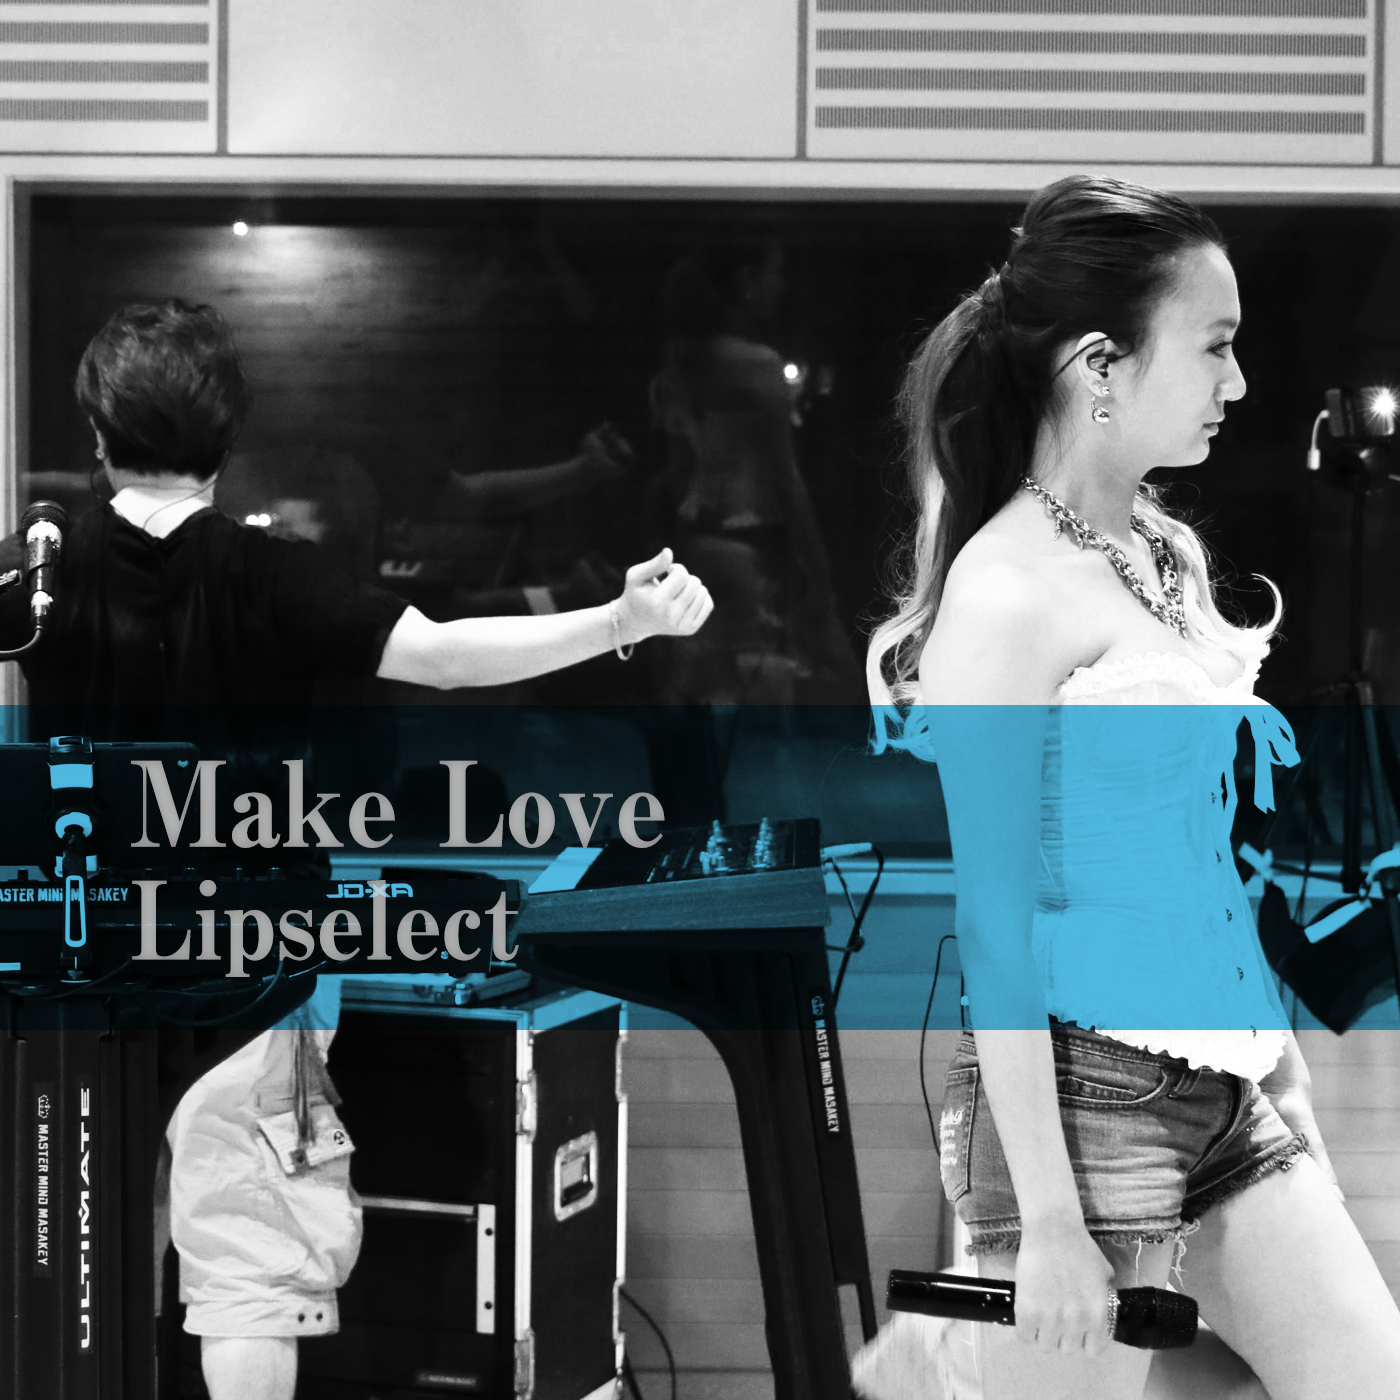 Make Love - Lipselect